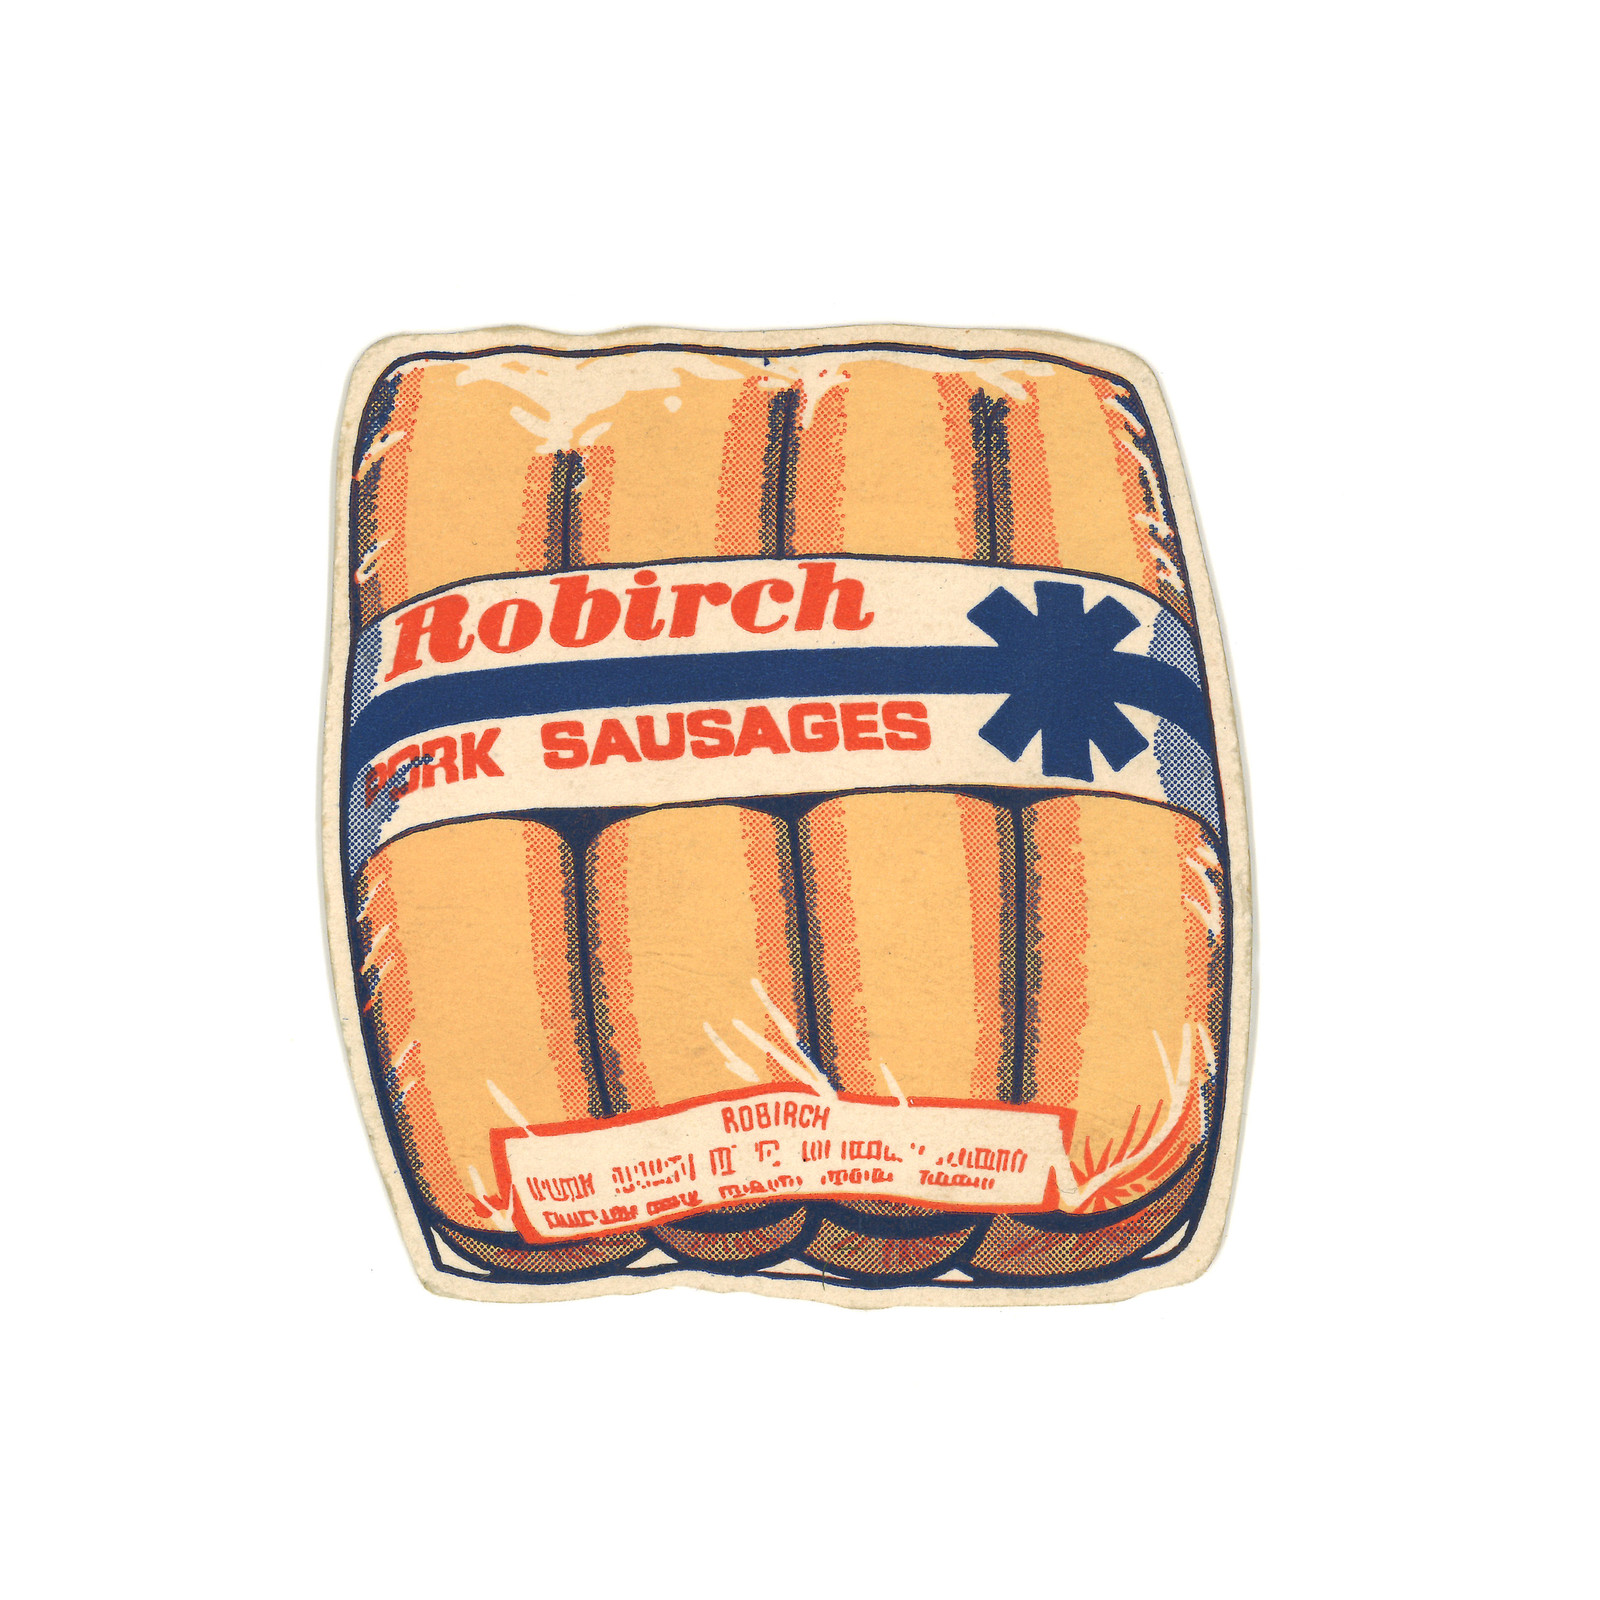 Robirch Sausages